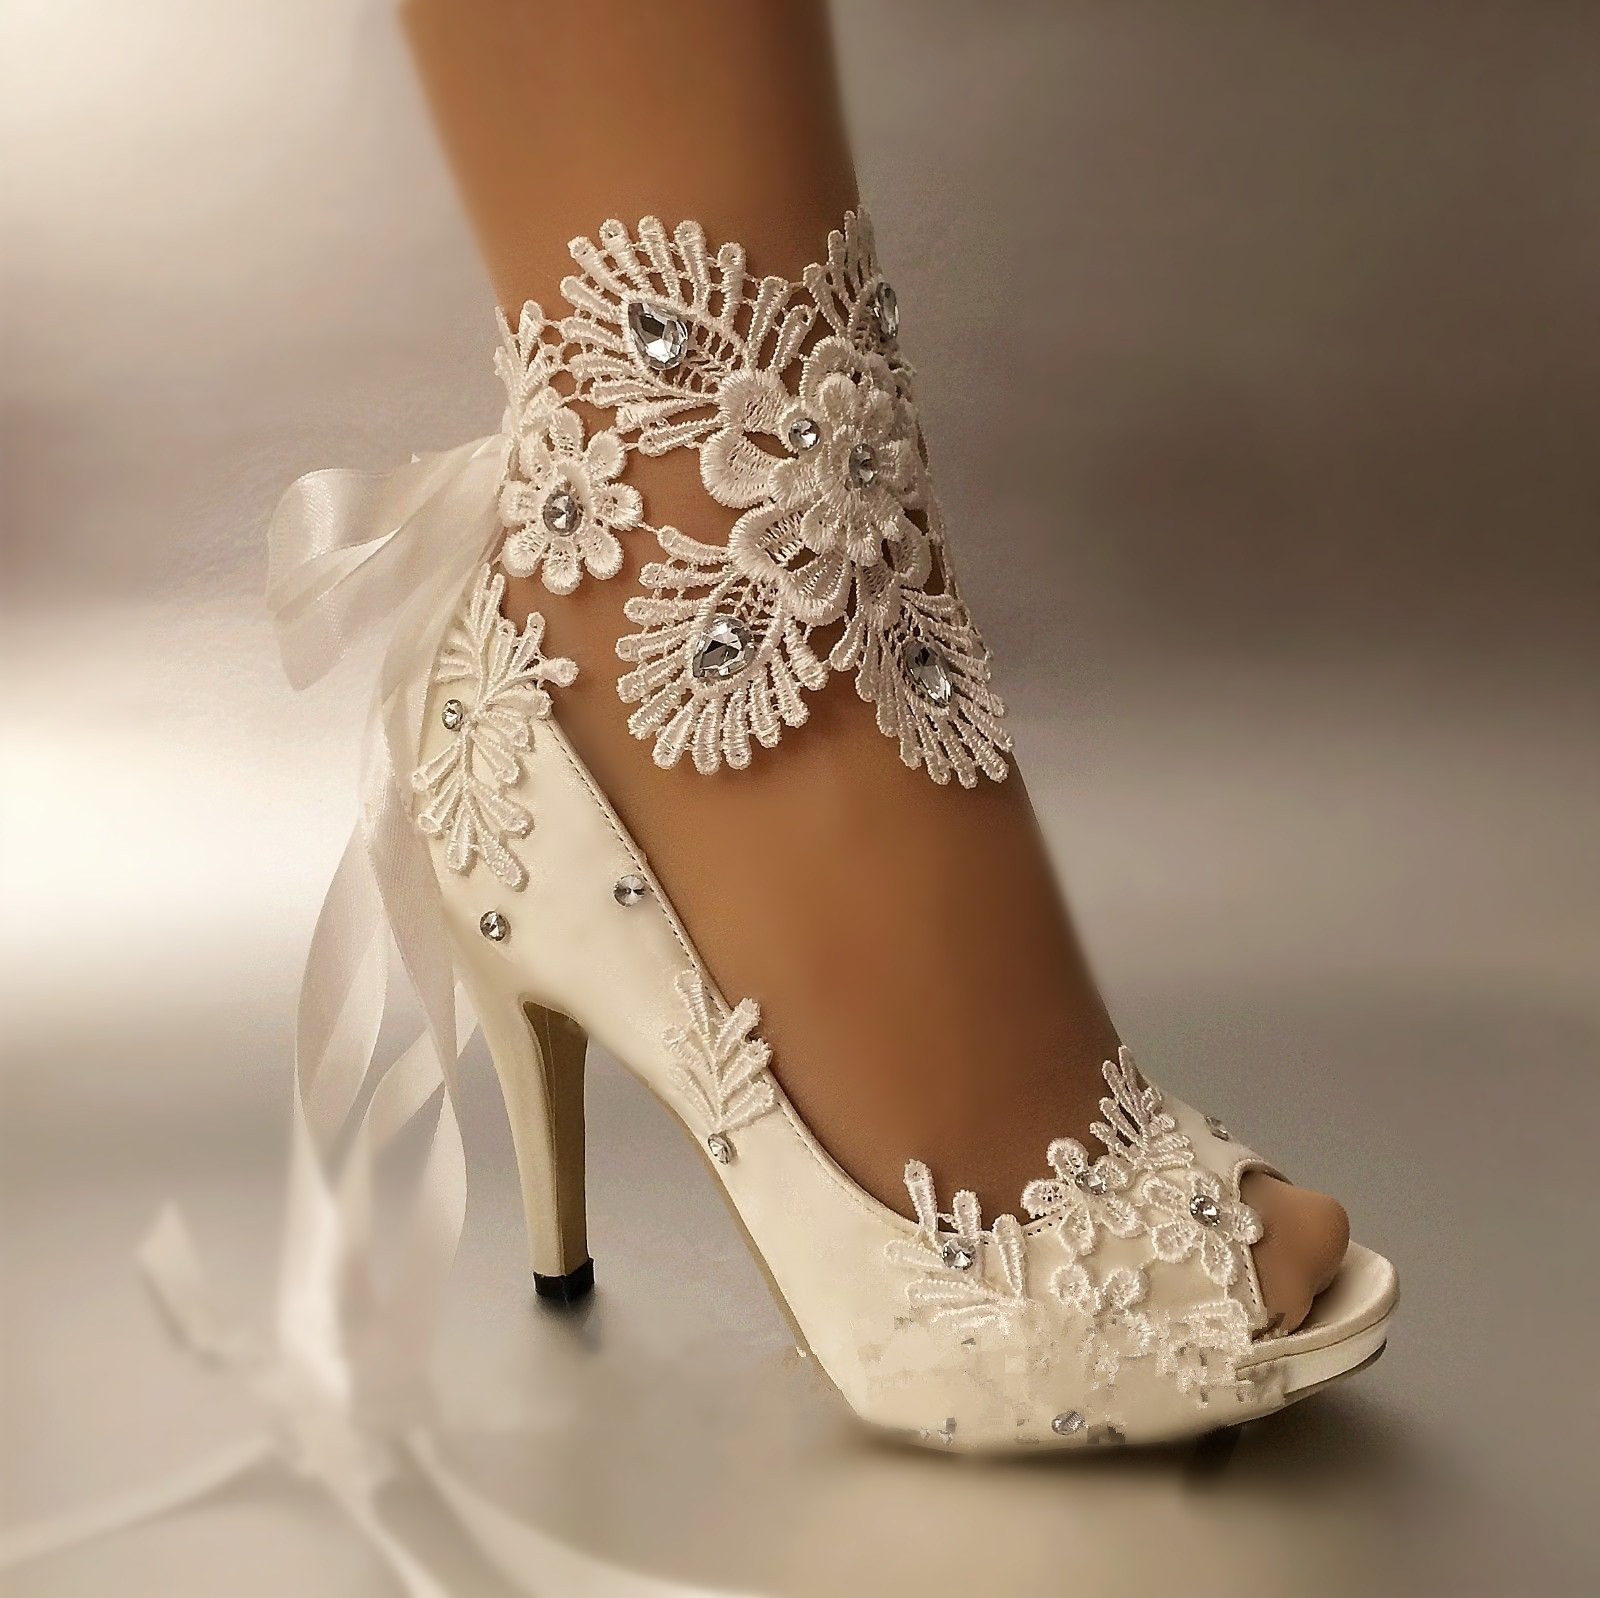 Wedding Dress Shoes: Aliexpress.com : Buy Dress Shoes Women Pumps Open Toe Lace